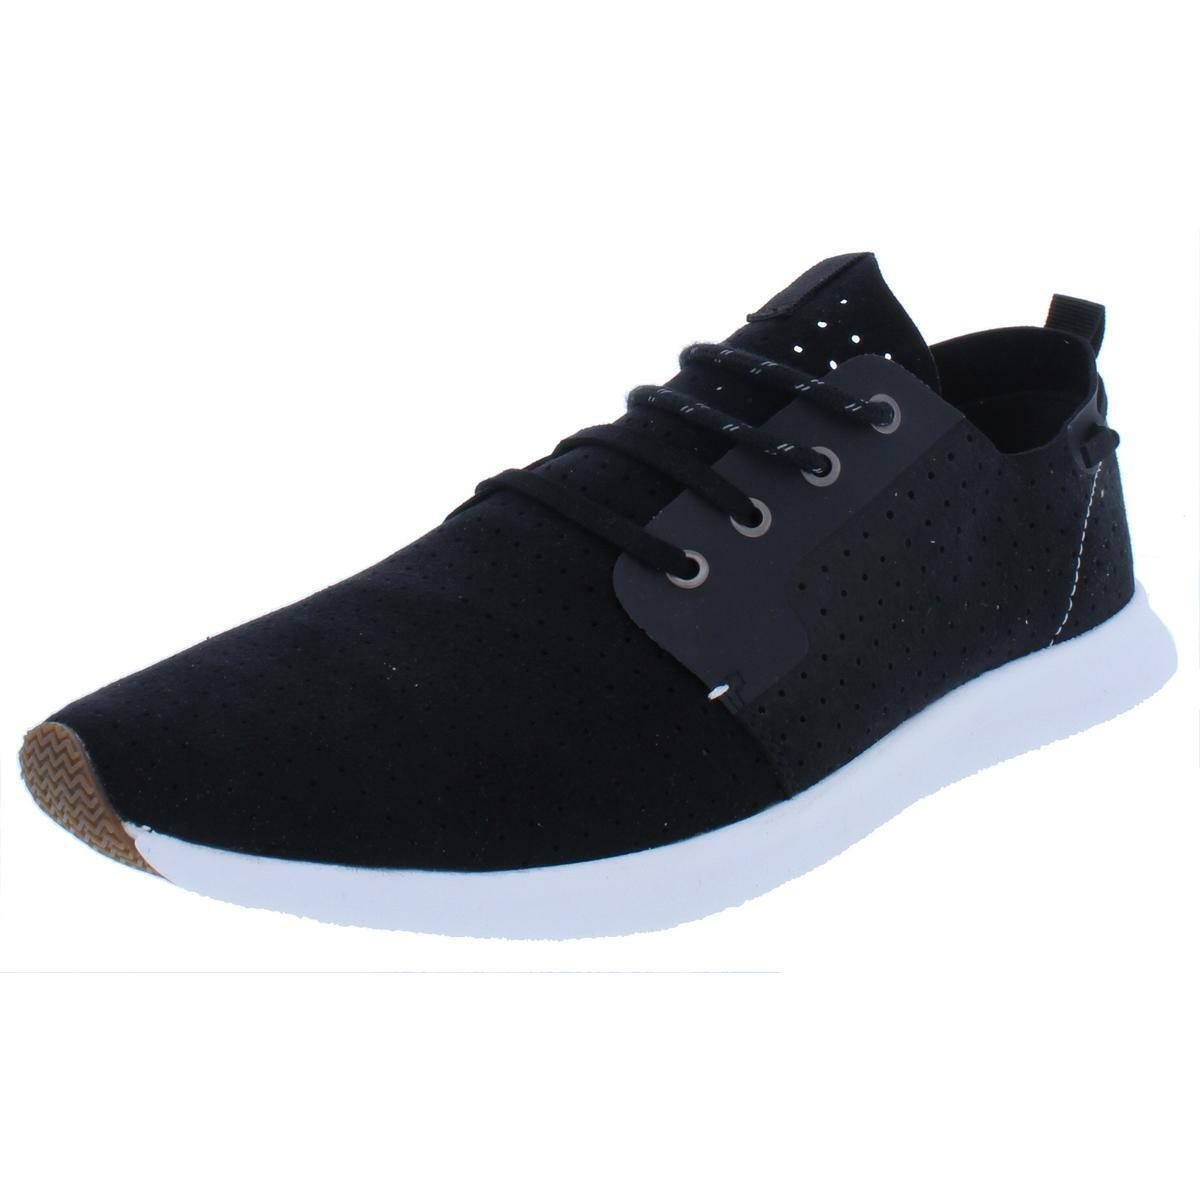 Steve Madden Men's Brick Faux Suede Athletic Fashion Sneaker Trainers Shoes